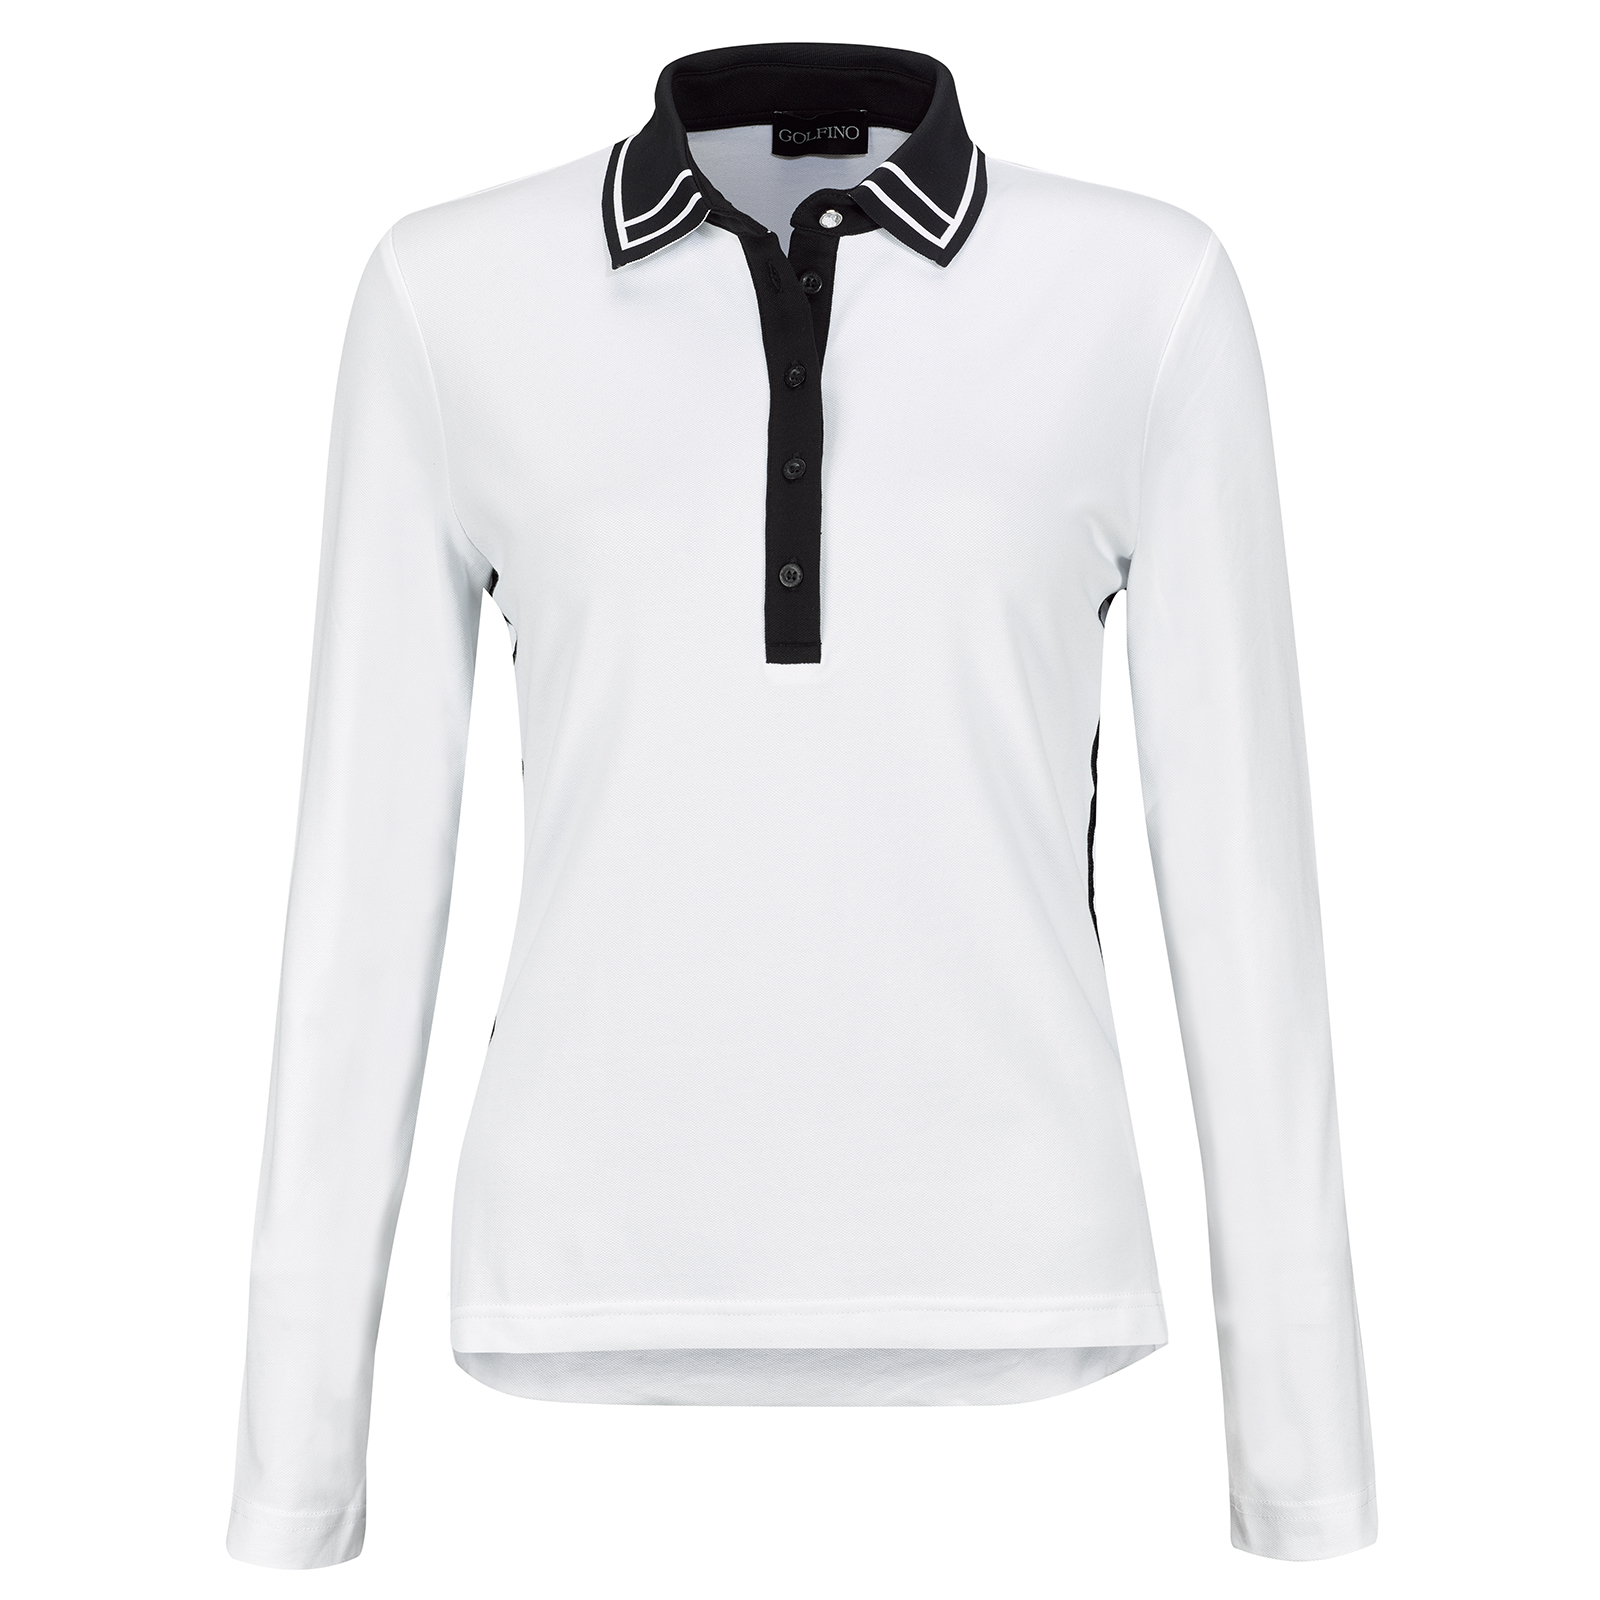 Damen Langarm Funktions-Golfpolo Sun Protection